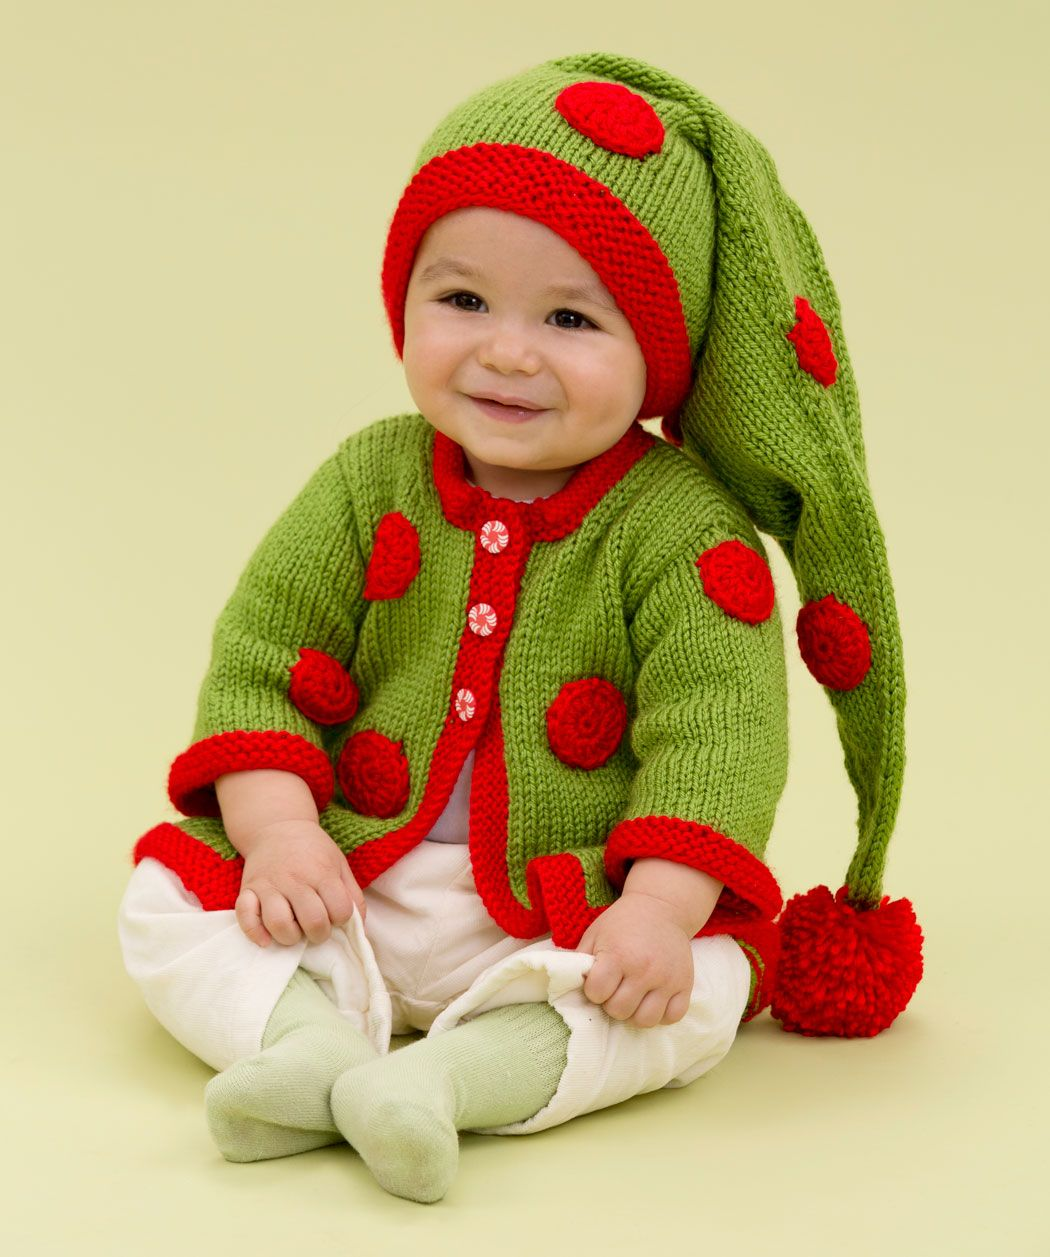 b51792908686 Santa s Baby Elf Free Knitting Pattern from Red Heart Yarns